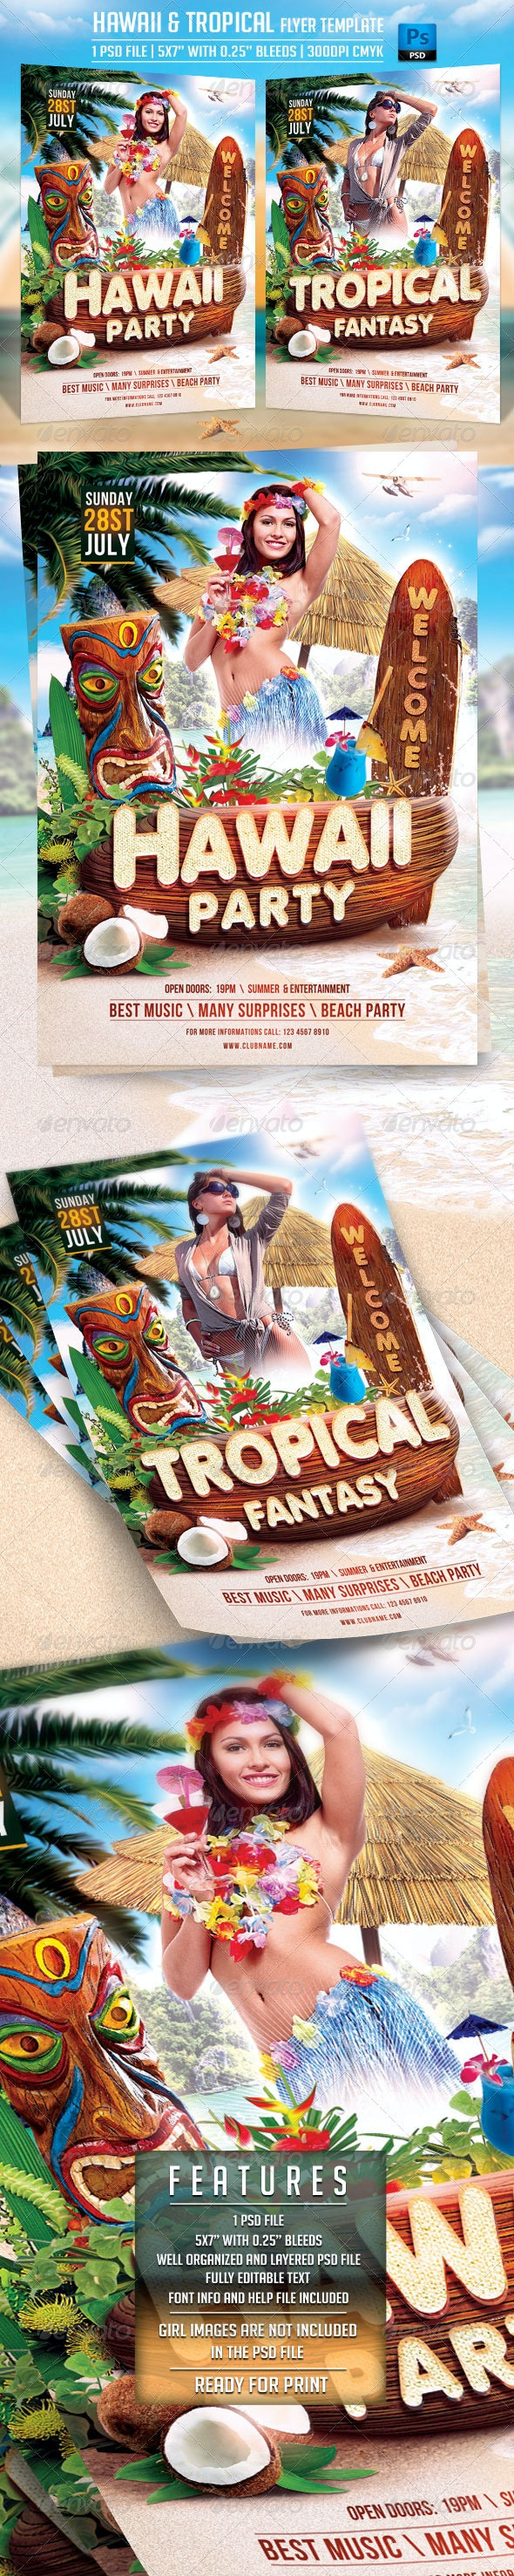 Hawaii and Tropical Flyer Template - Flyers Print Templates